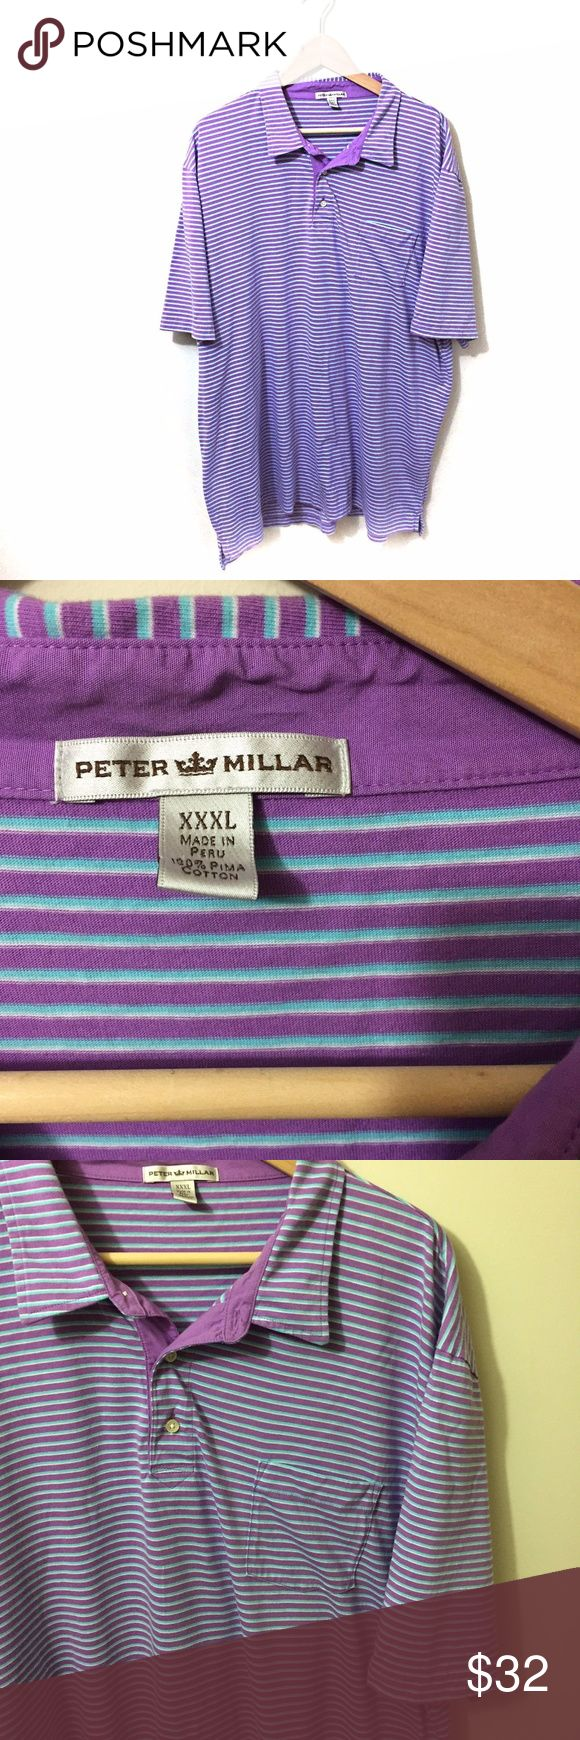 """Peter Millar Summer Comfort Short Sleeve Polo XXL Peter Millar striped polo shirt, size XXXL.  Gently worn, no flaws are noted.  Chest flat across:  27"""" Length:  33"""" Peter Millar Shirts Polos"""